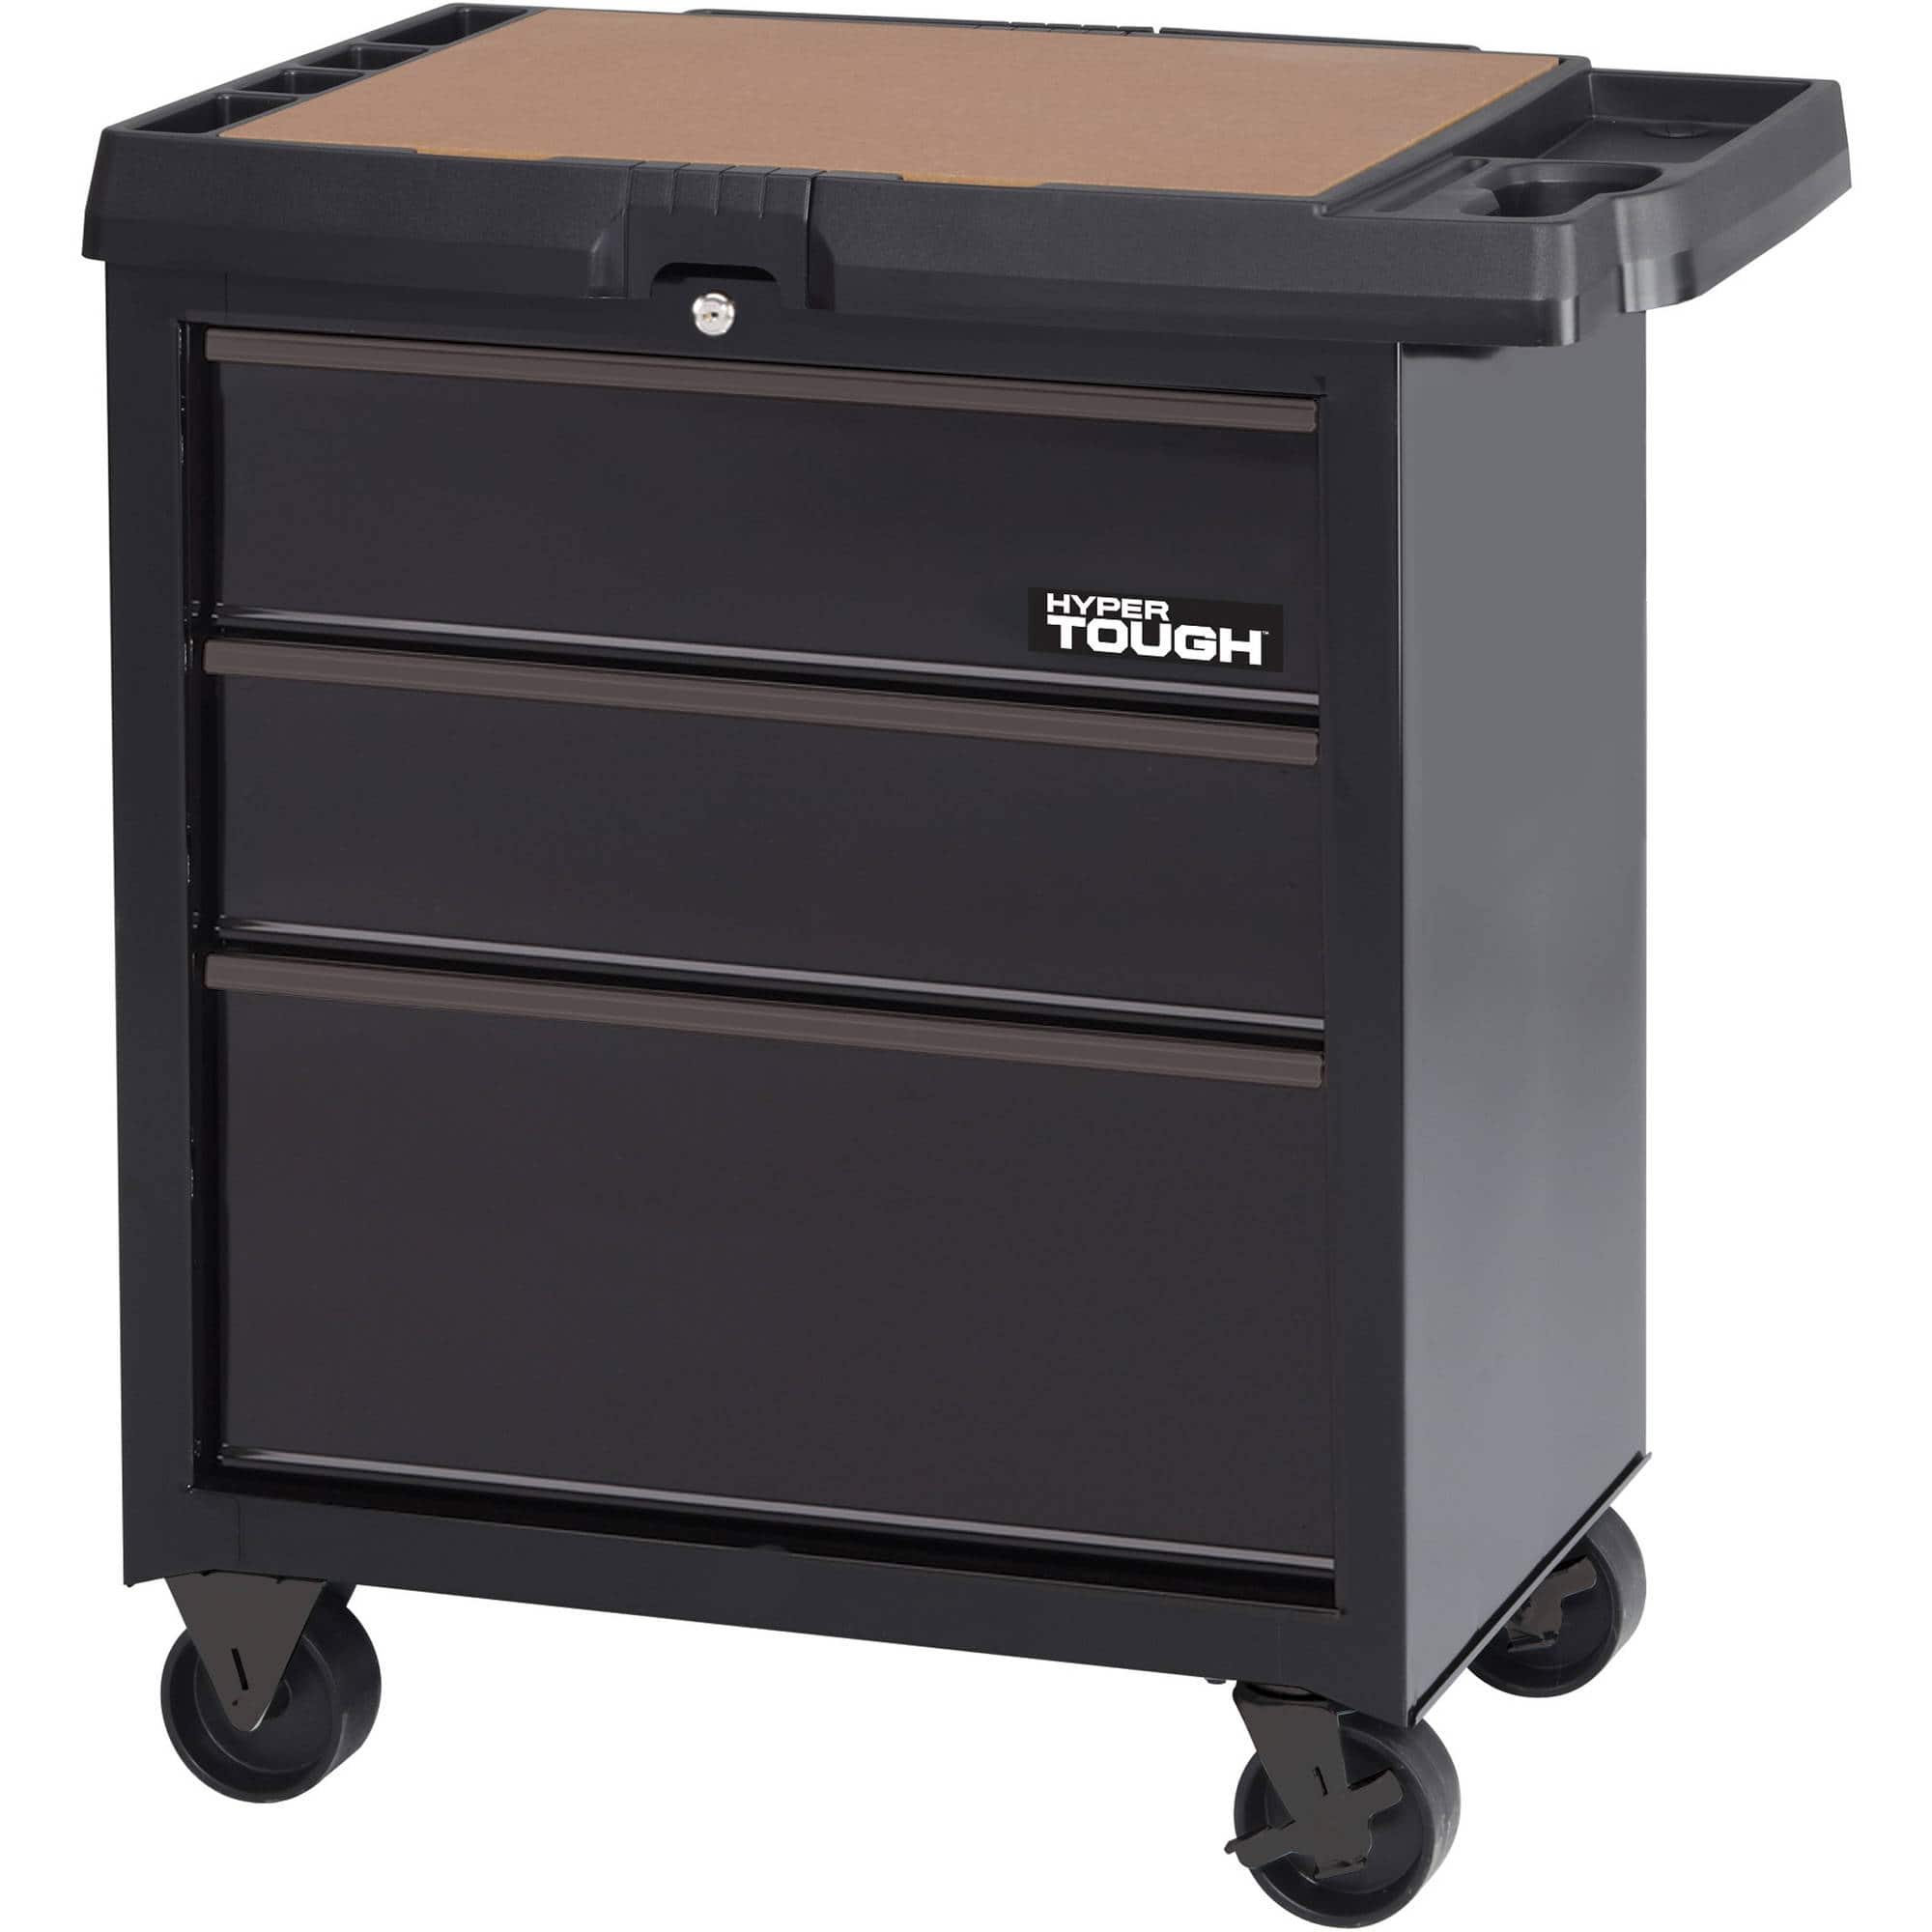 Walmart Hyper Tough 3-Drawer Cart $37 B&M YMMV